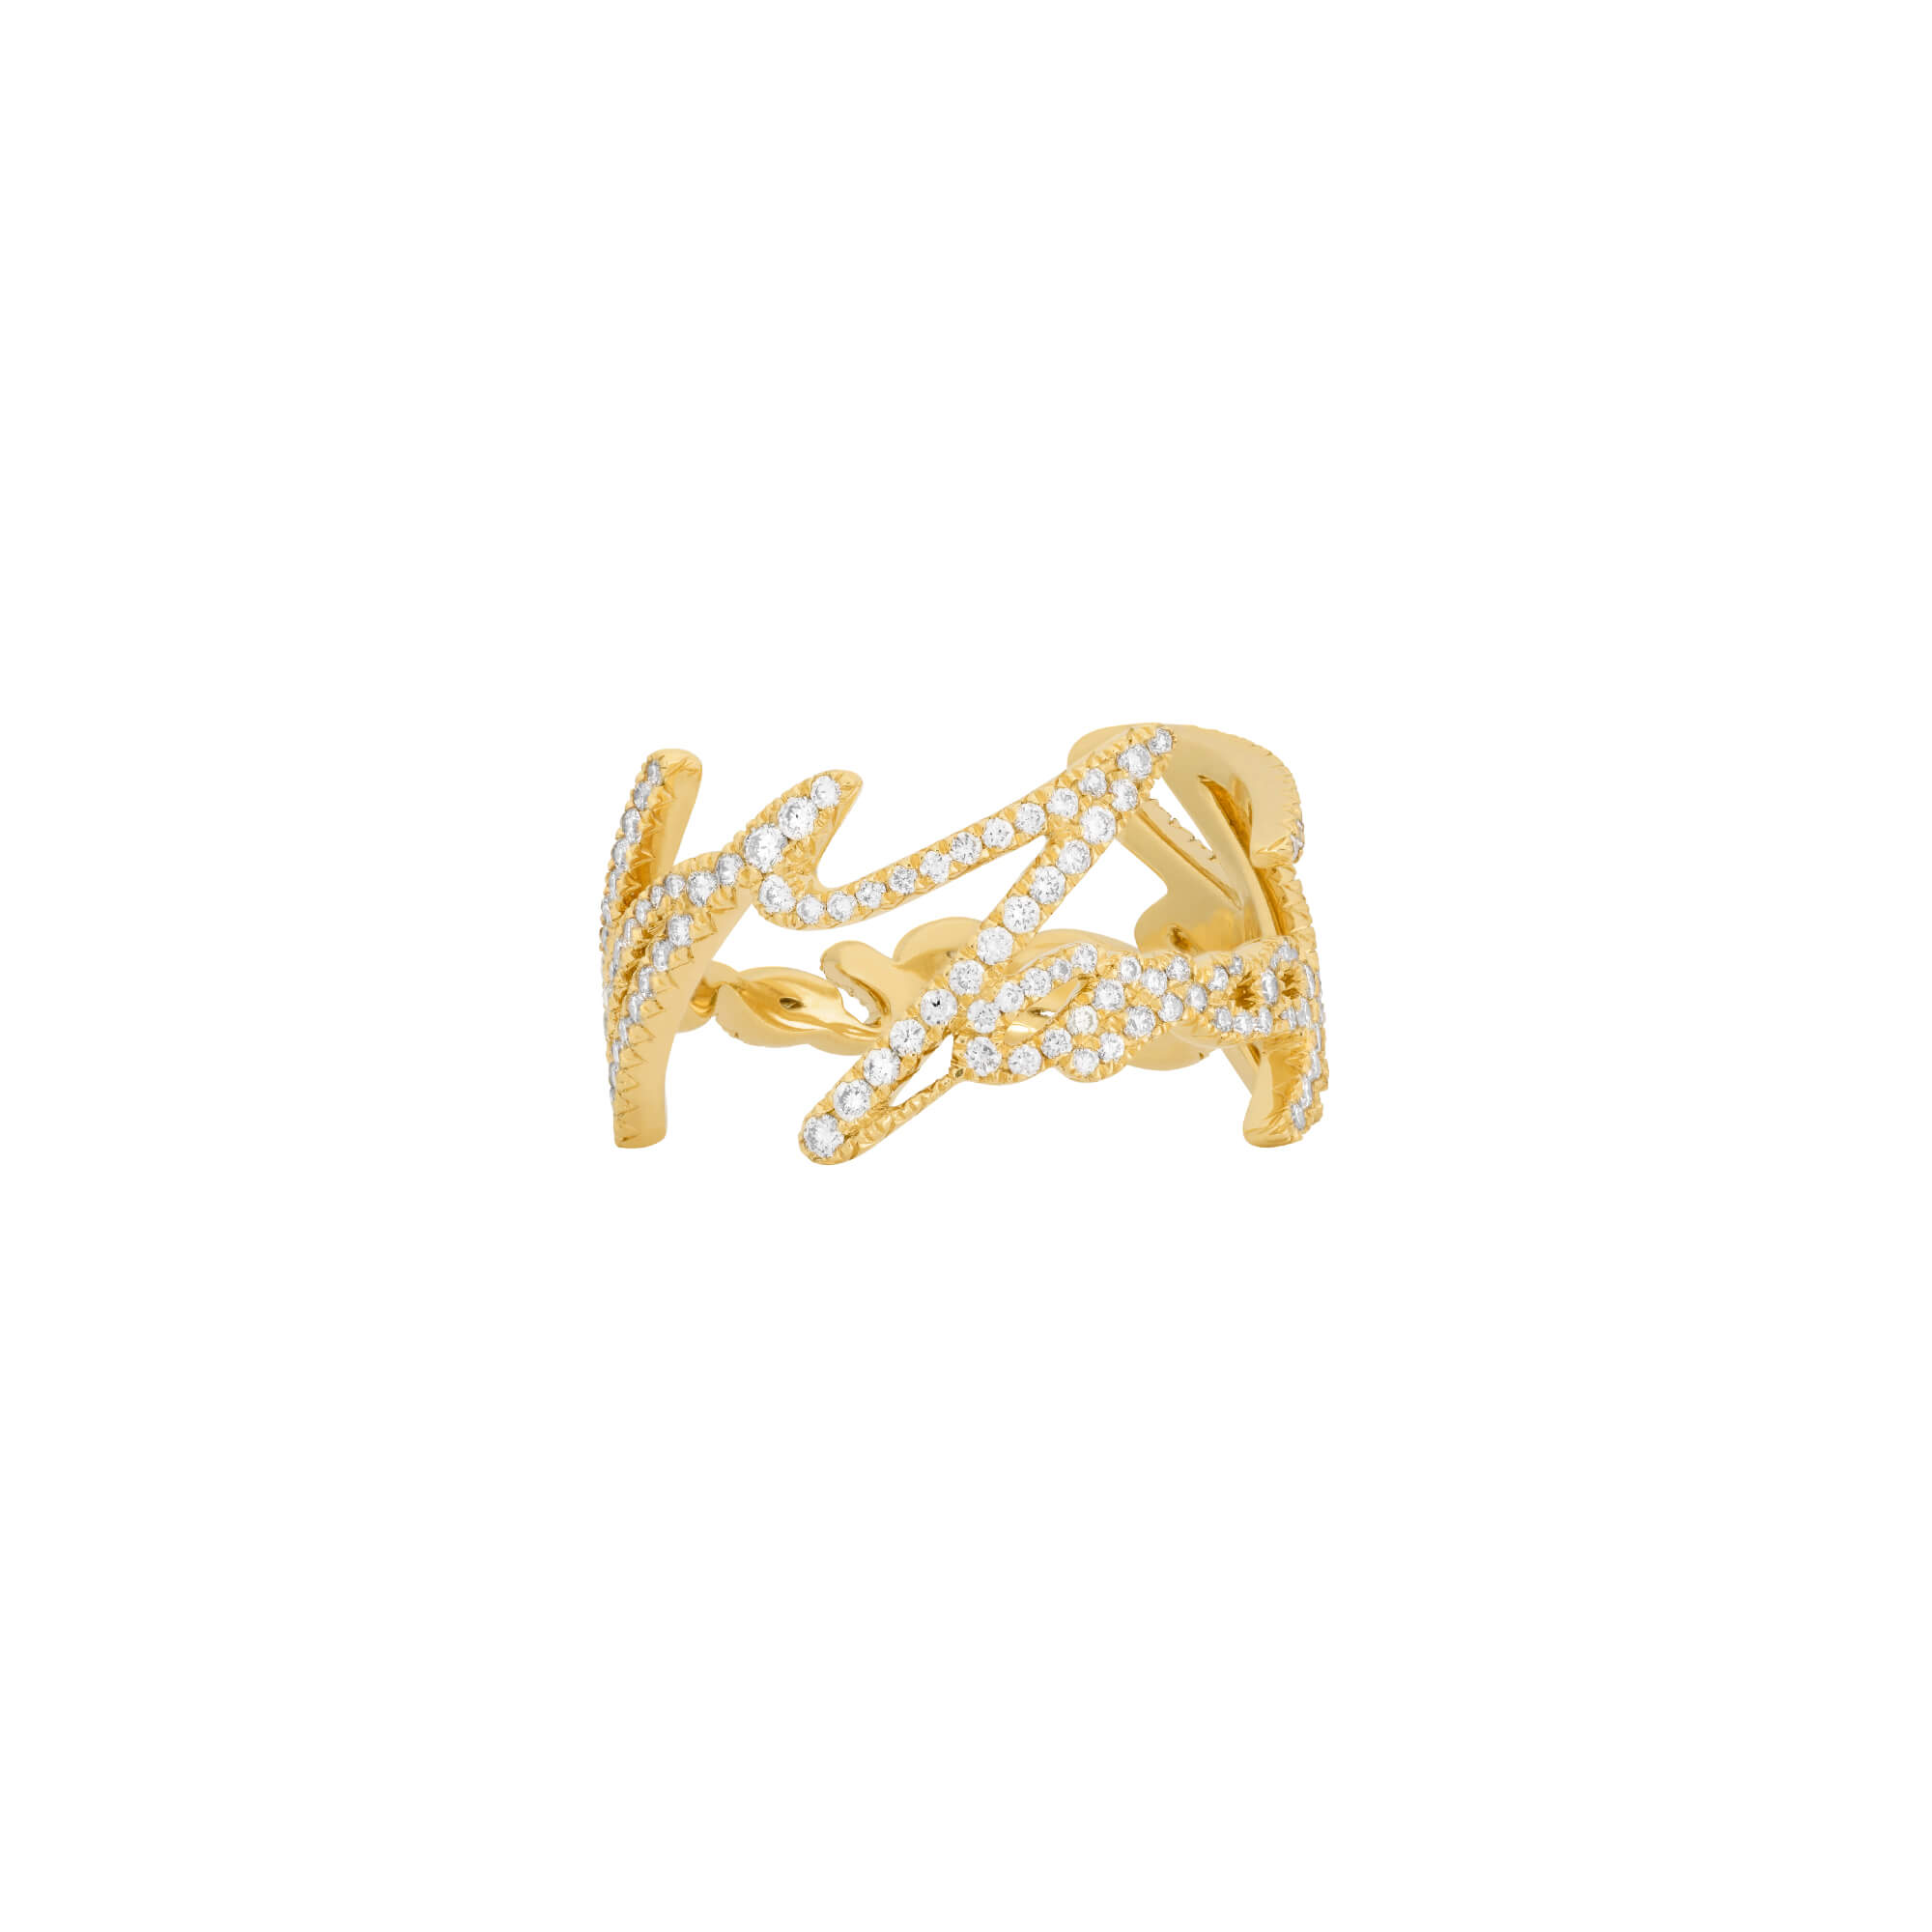 Neon Yellow Gold & White Diamond More Passion Ring | I Promise To Love You